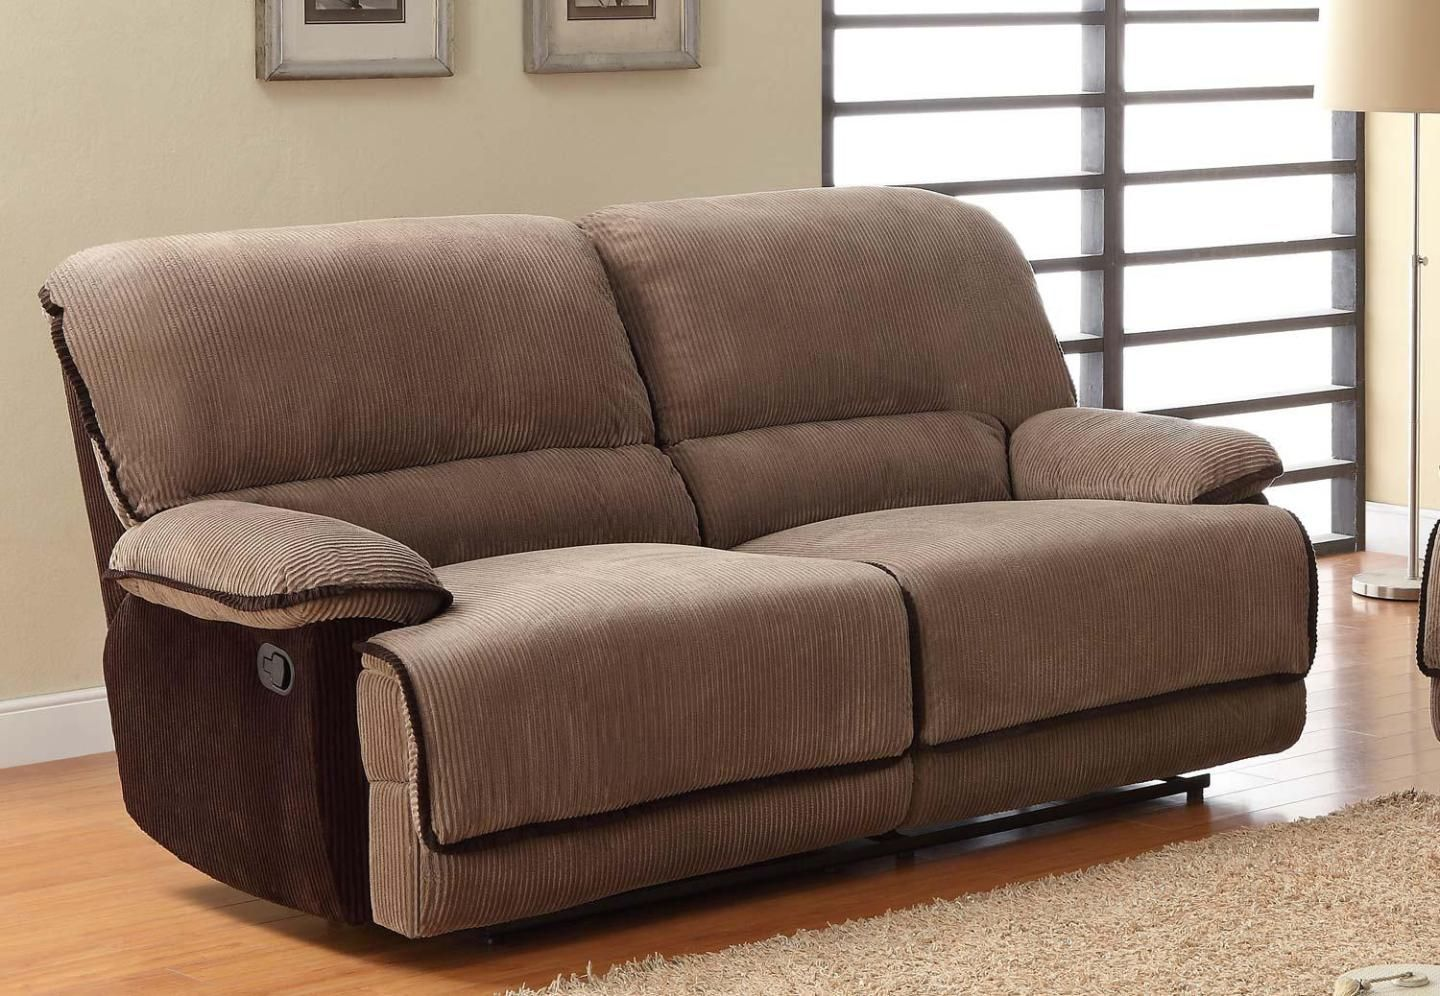 10 Incredible Ideas How To Improve Reclining Sofa Slip Cover Recliner Cover Sofa Covers Reclining Sofa